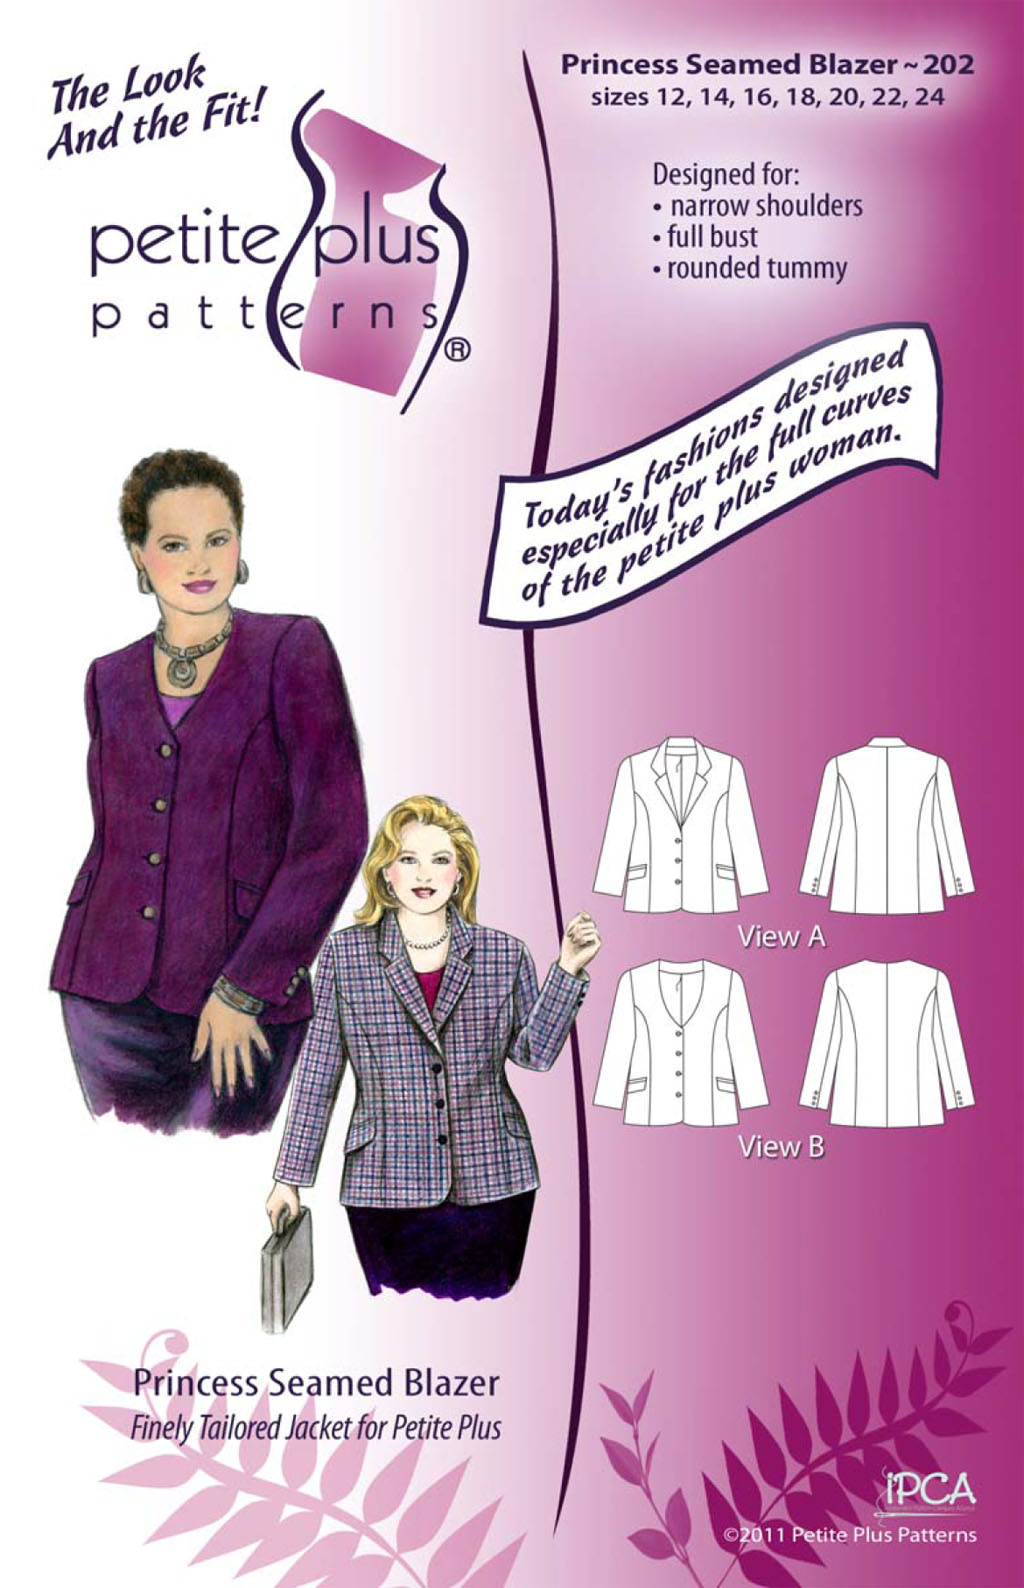 Petite Plus Patterns Princess Seamed Blazer 202